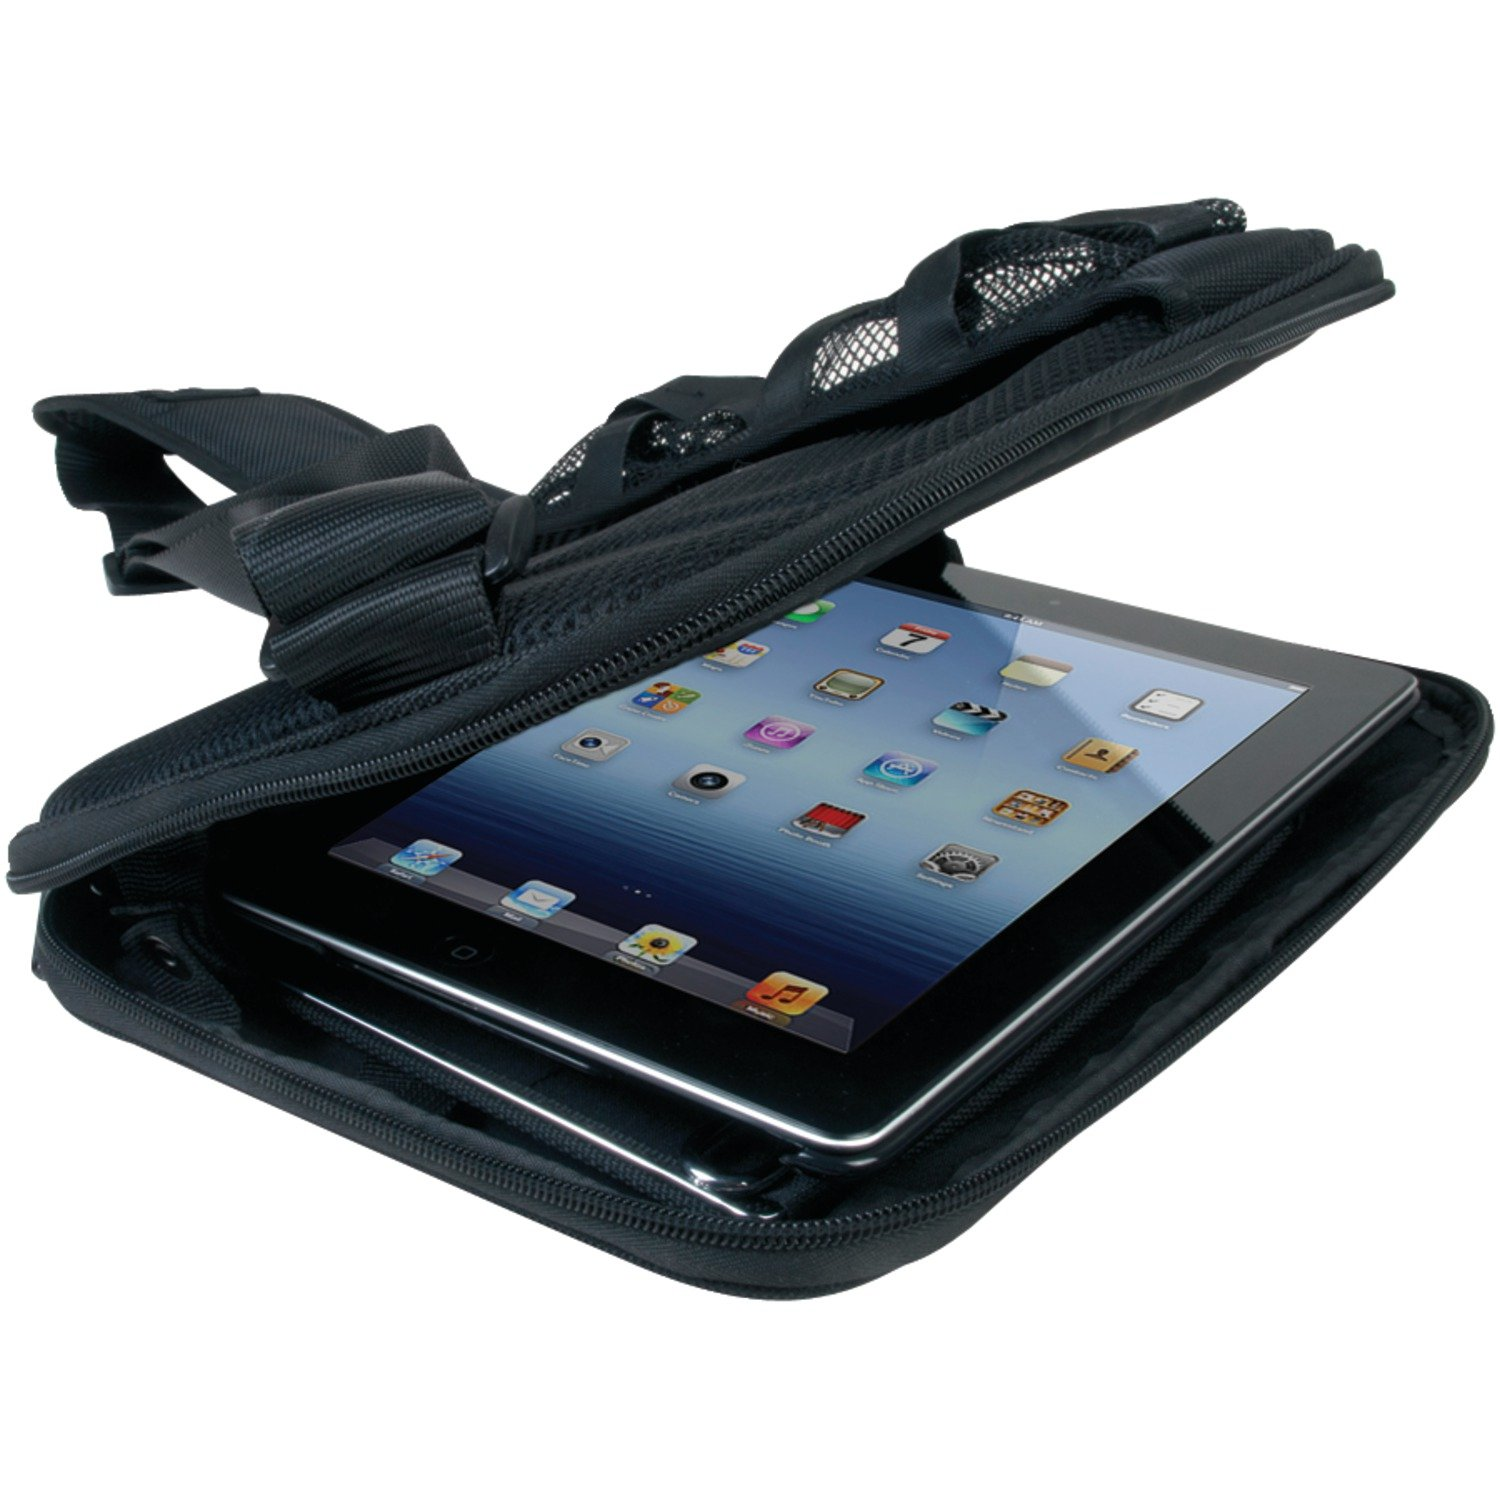 CTA Digital Hands-Free Carrying Case for iPad 2/3 (PAD-HFCC)